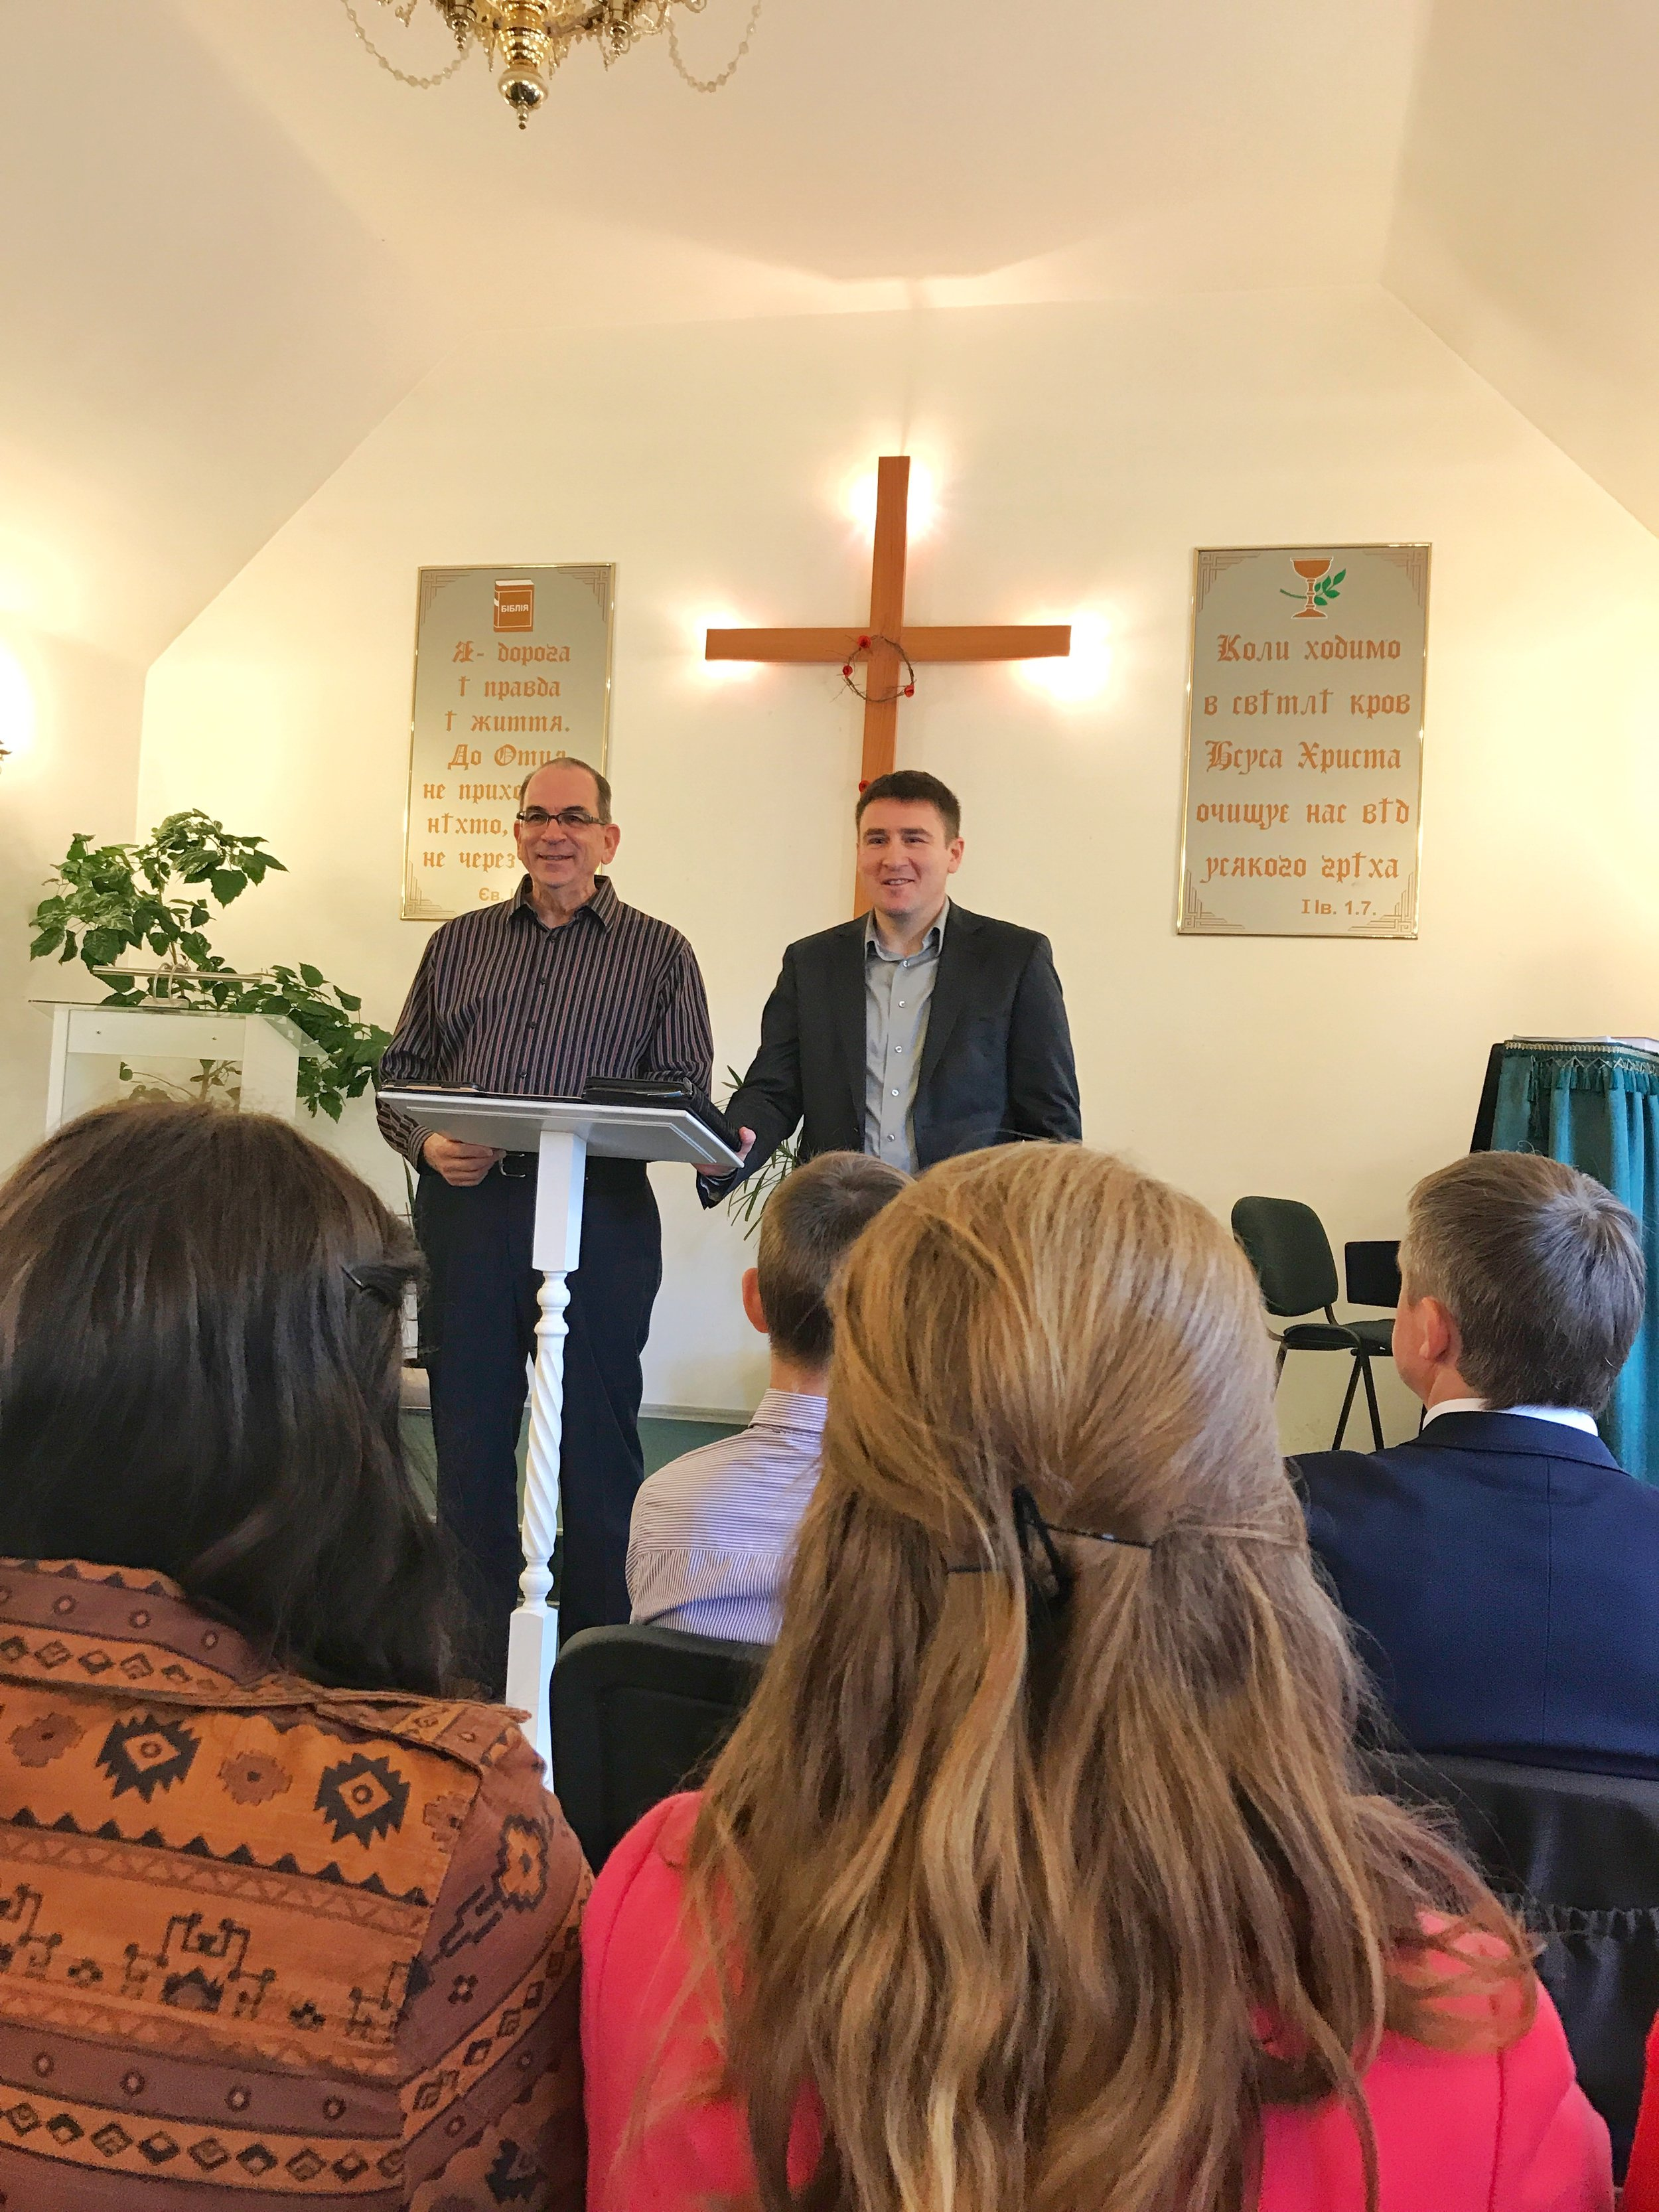 Dave preaching and Slavik interpreting for Sunday's sermon...